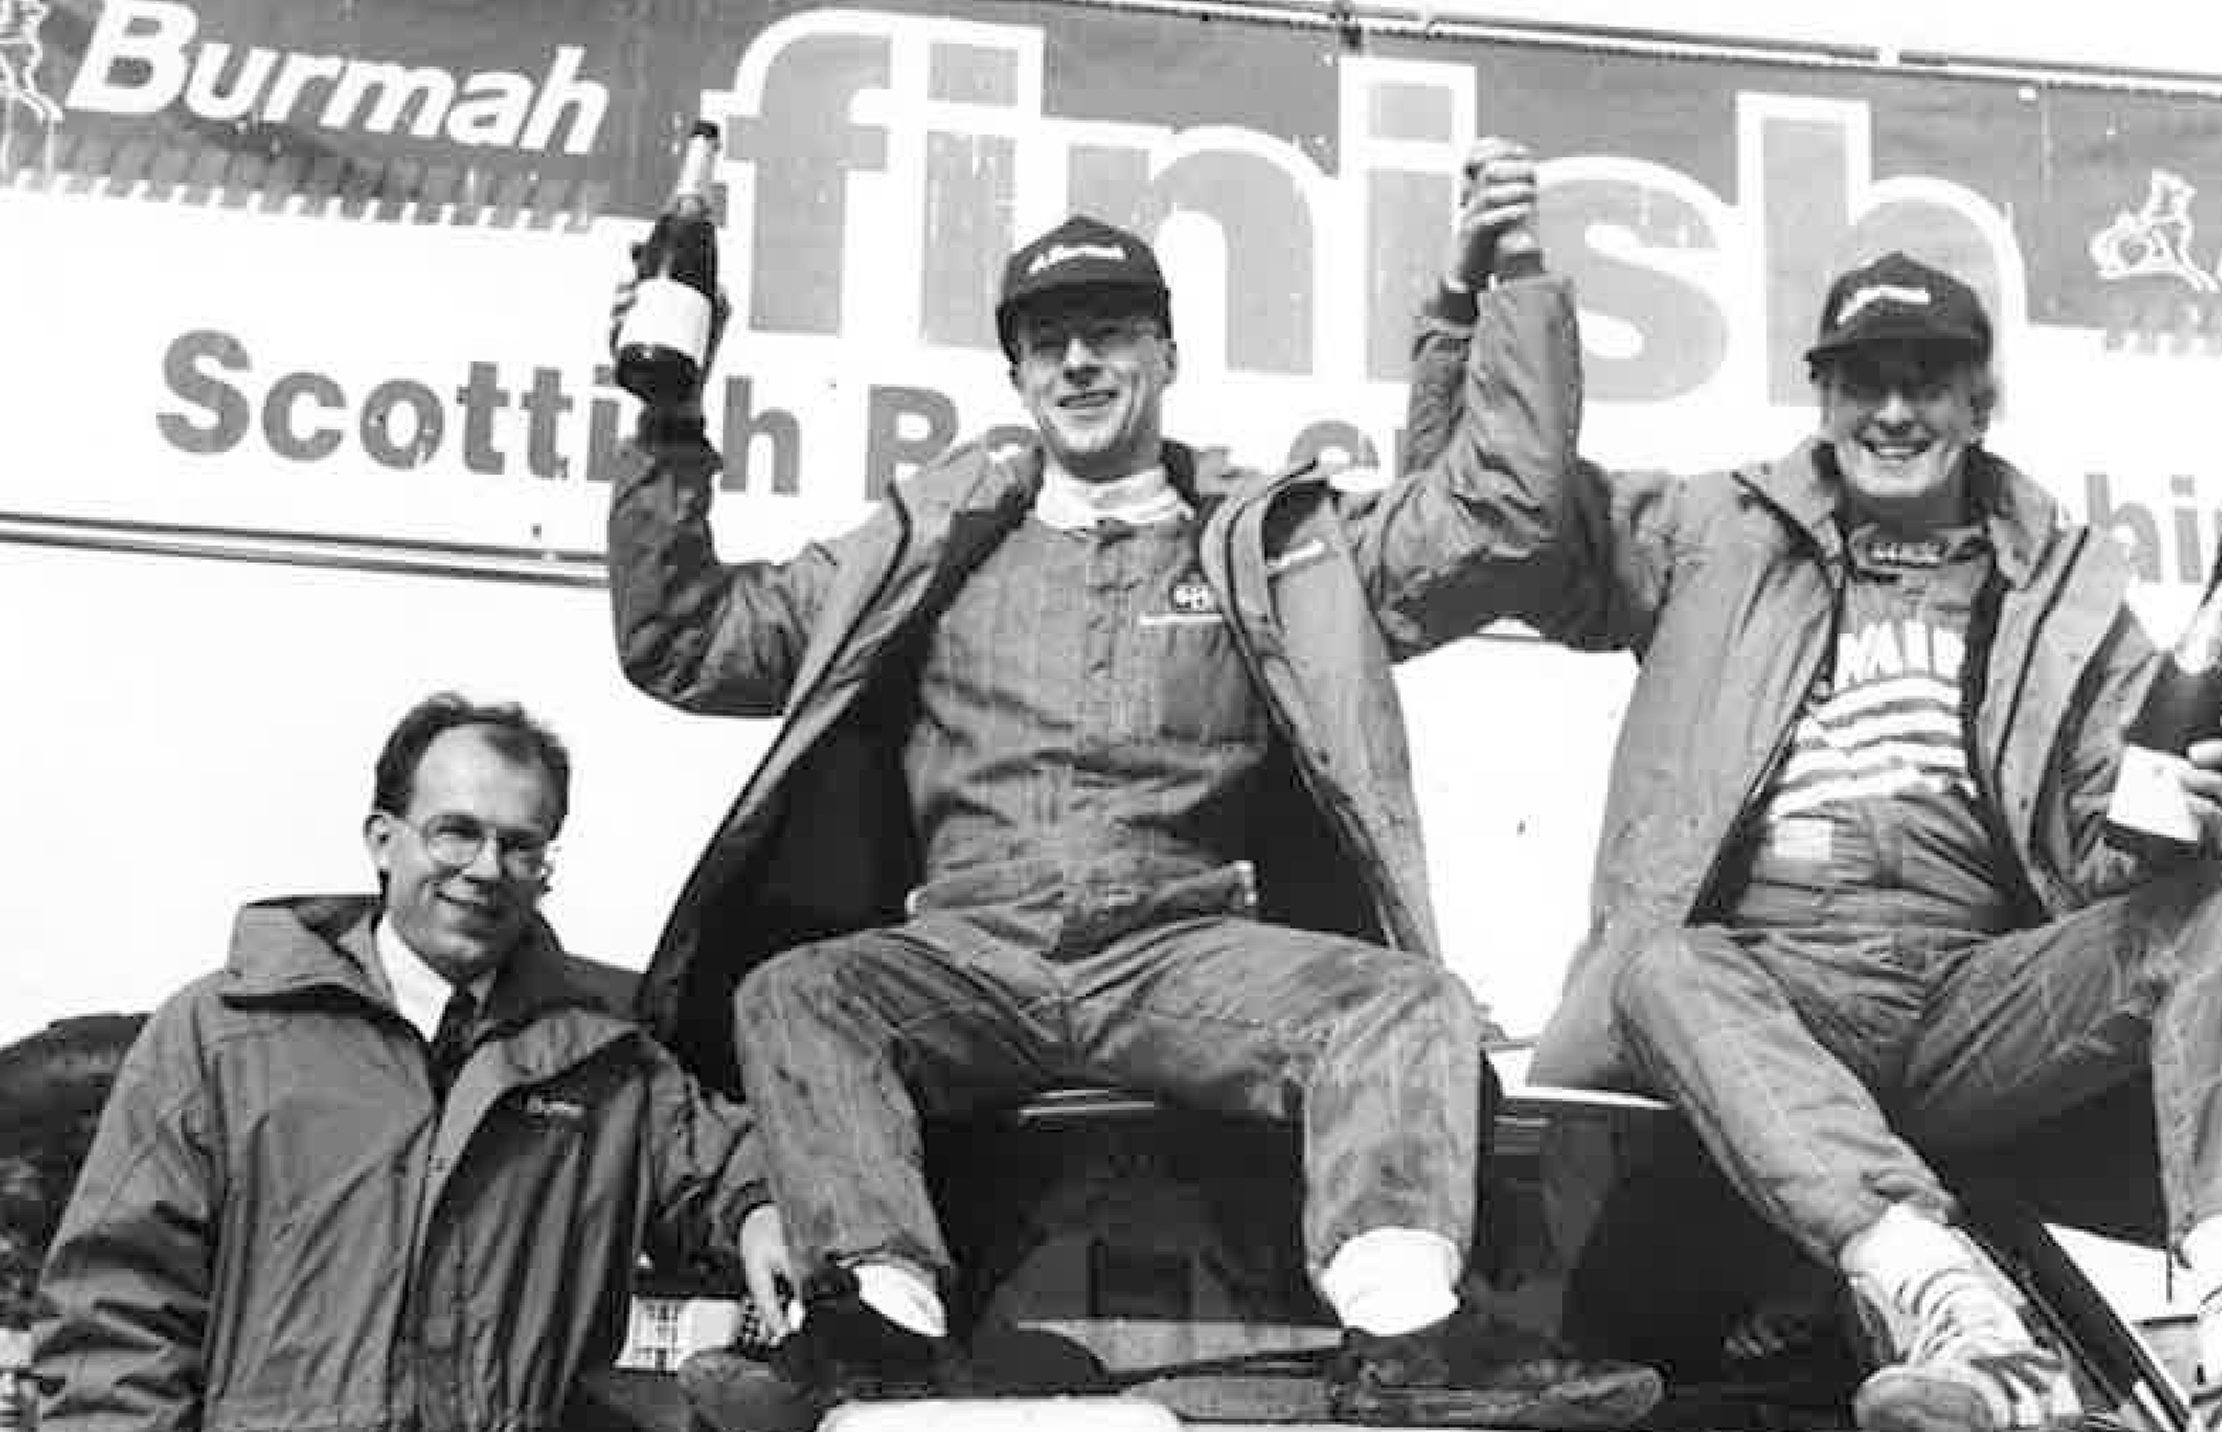 Donald Milne (middle) at the Burmah Scottish Rally Championship in 1994